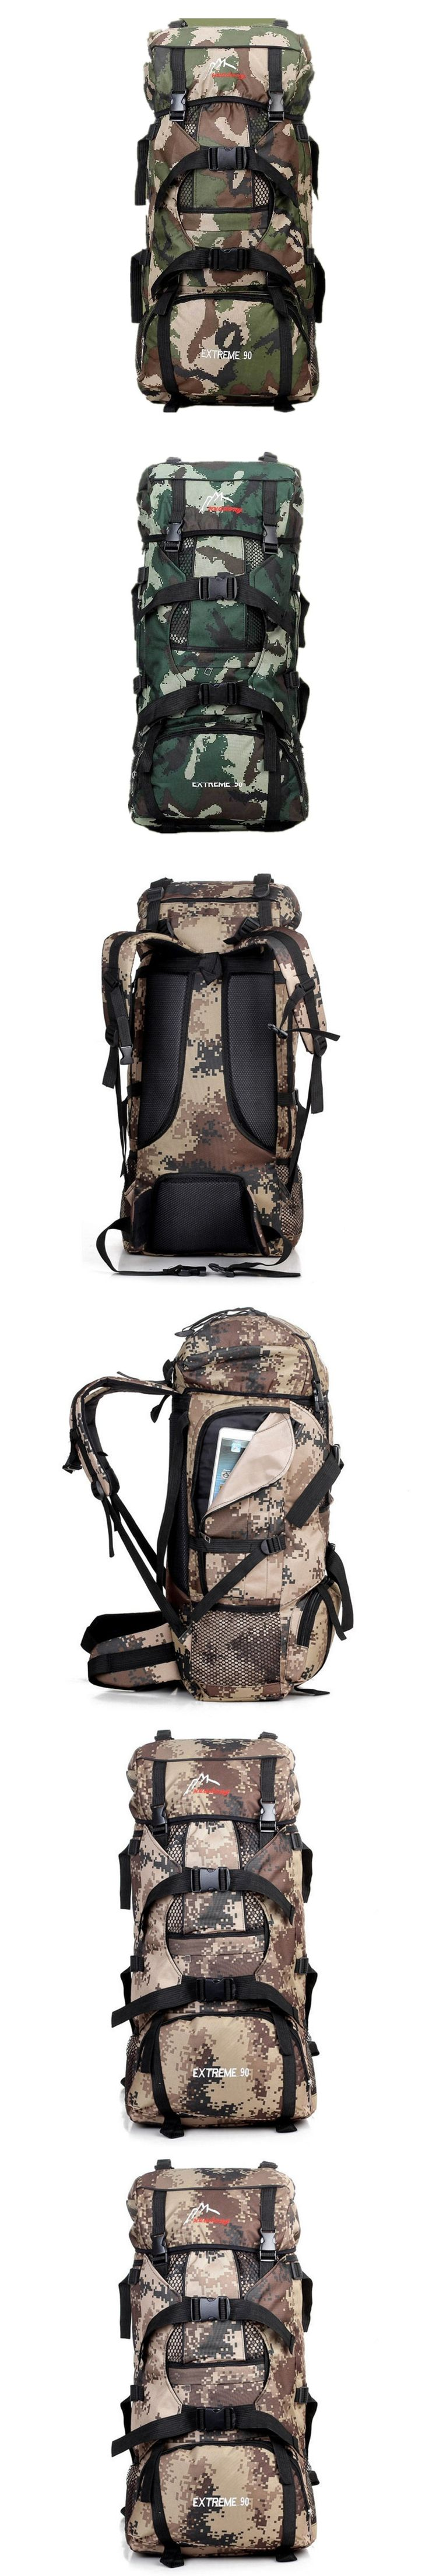 2017 New 90L Outdoor Trekking Travel Rucksack Case Large Capacity Climbing Bags Camouflage Mochila Militar Tactical Backpack